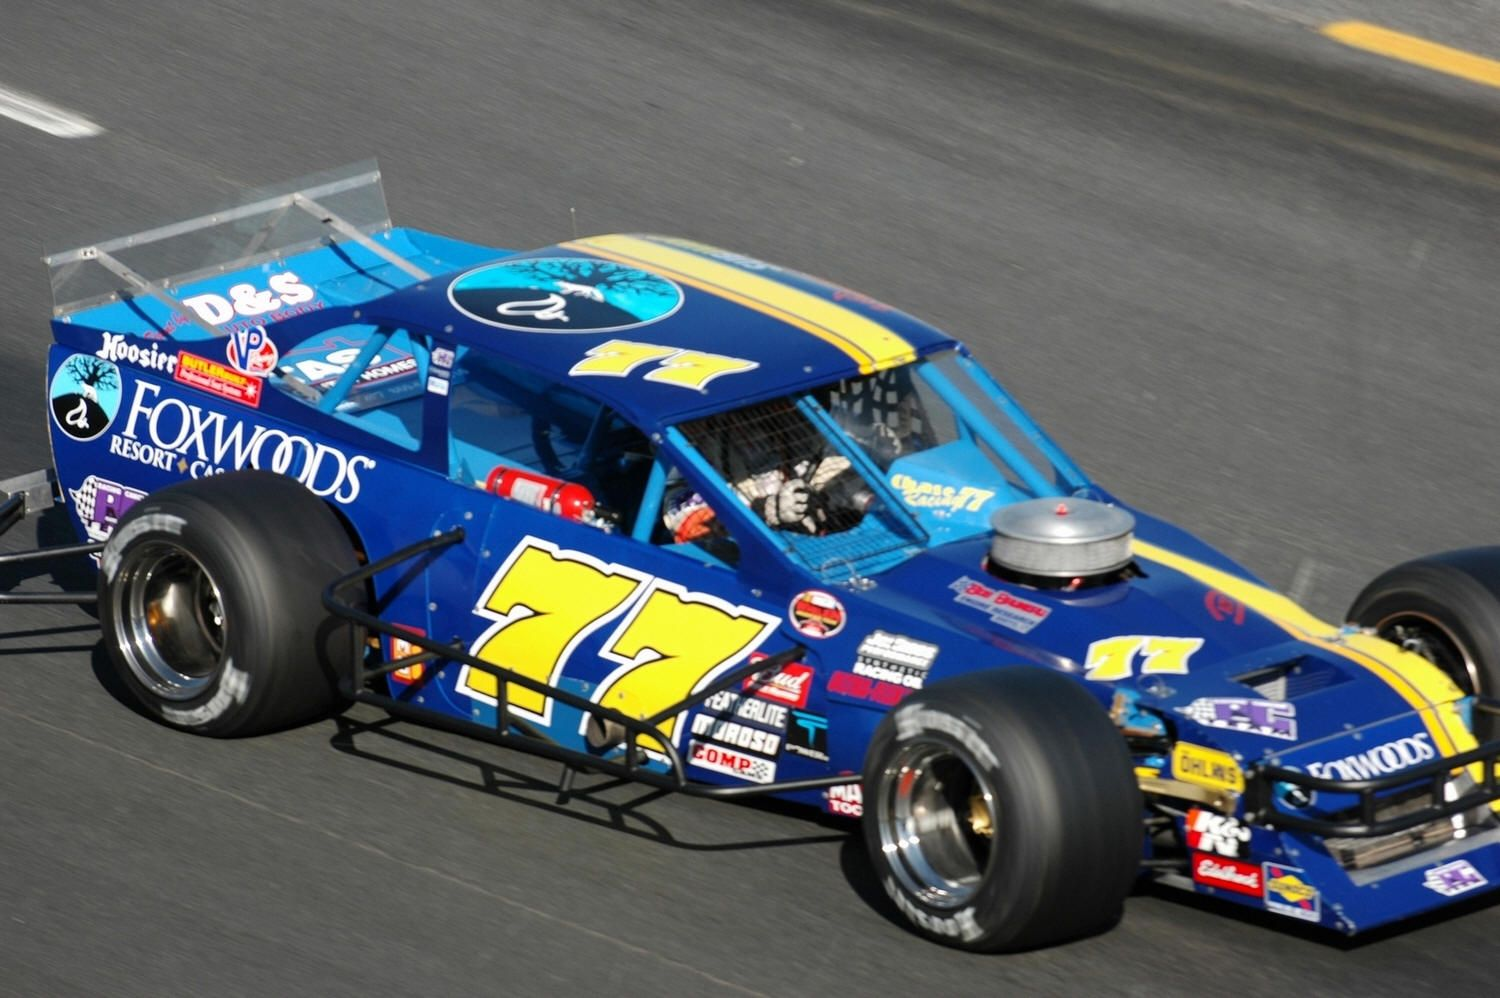 whelen modified series - Google Search | Racing | Pinterest | Cars ...